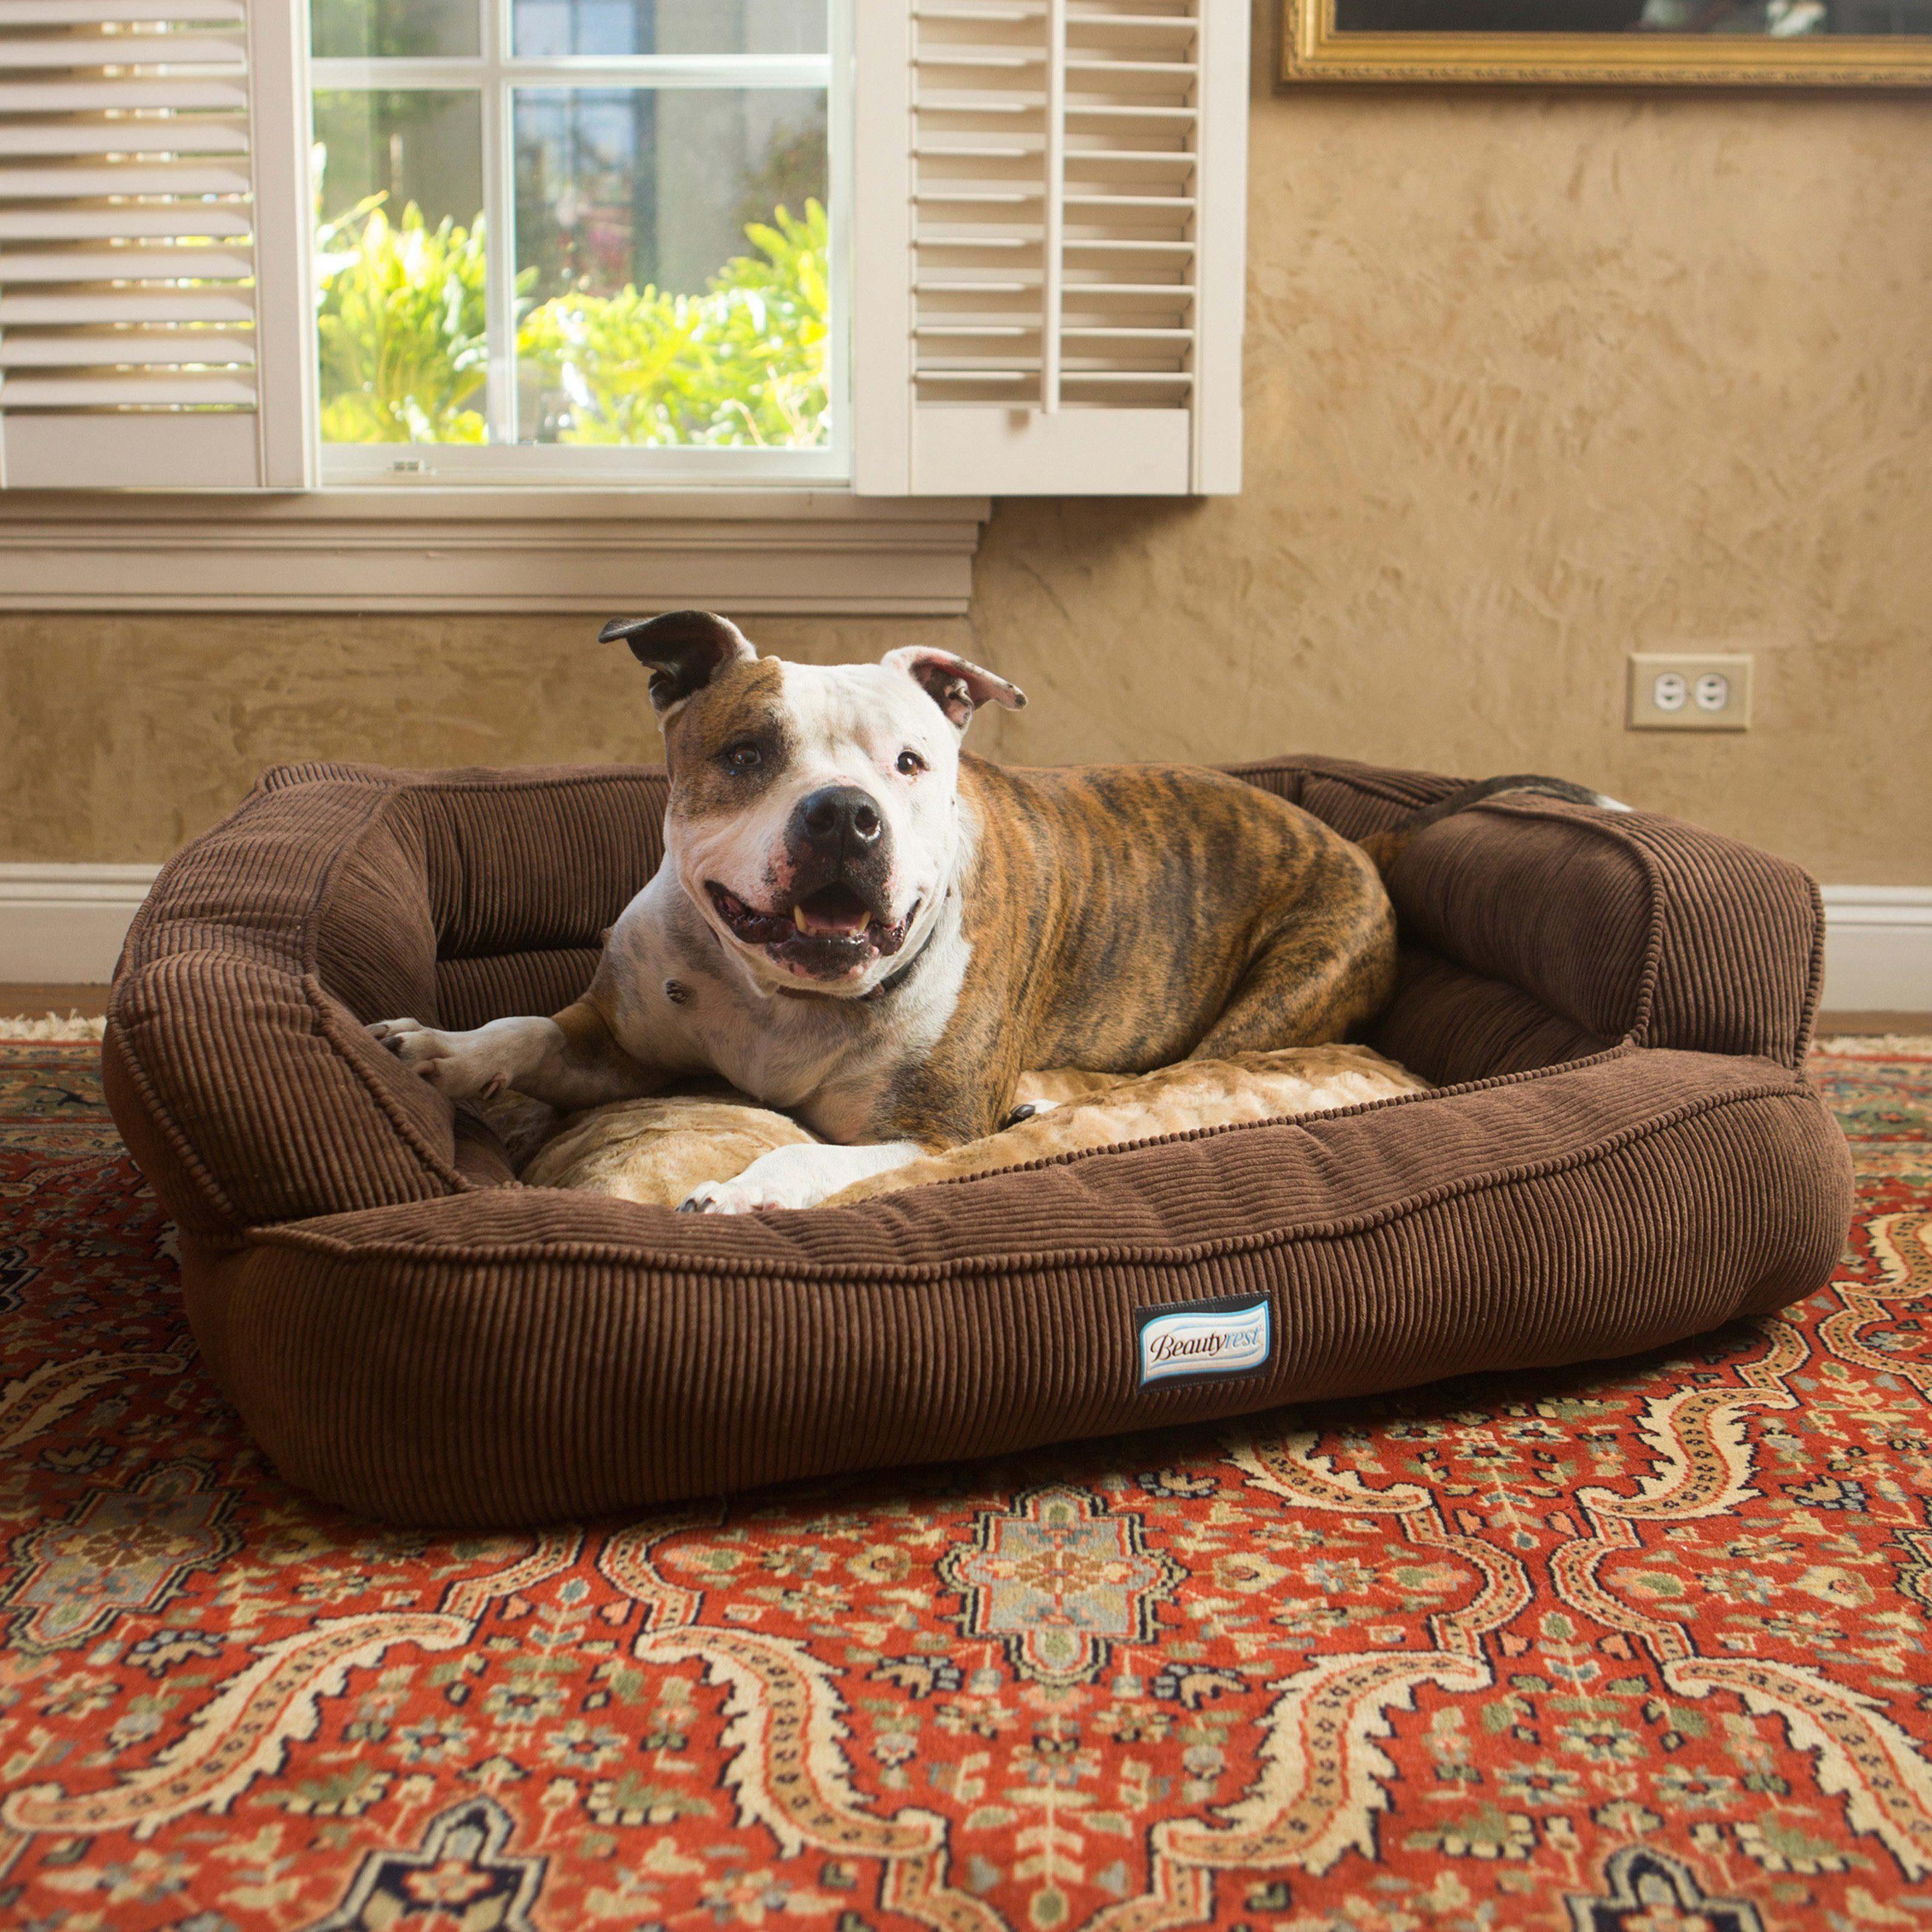 Simmons Colossal Rest Orthopedic Memory Foam Dog Bed